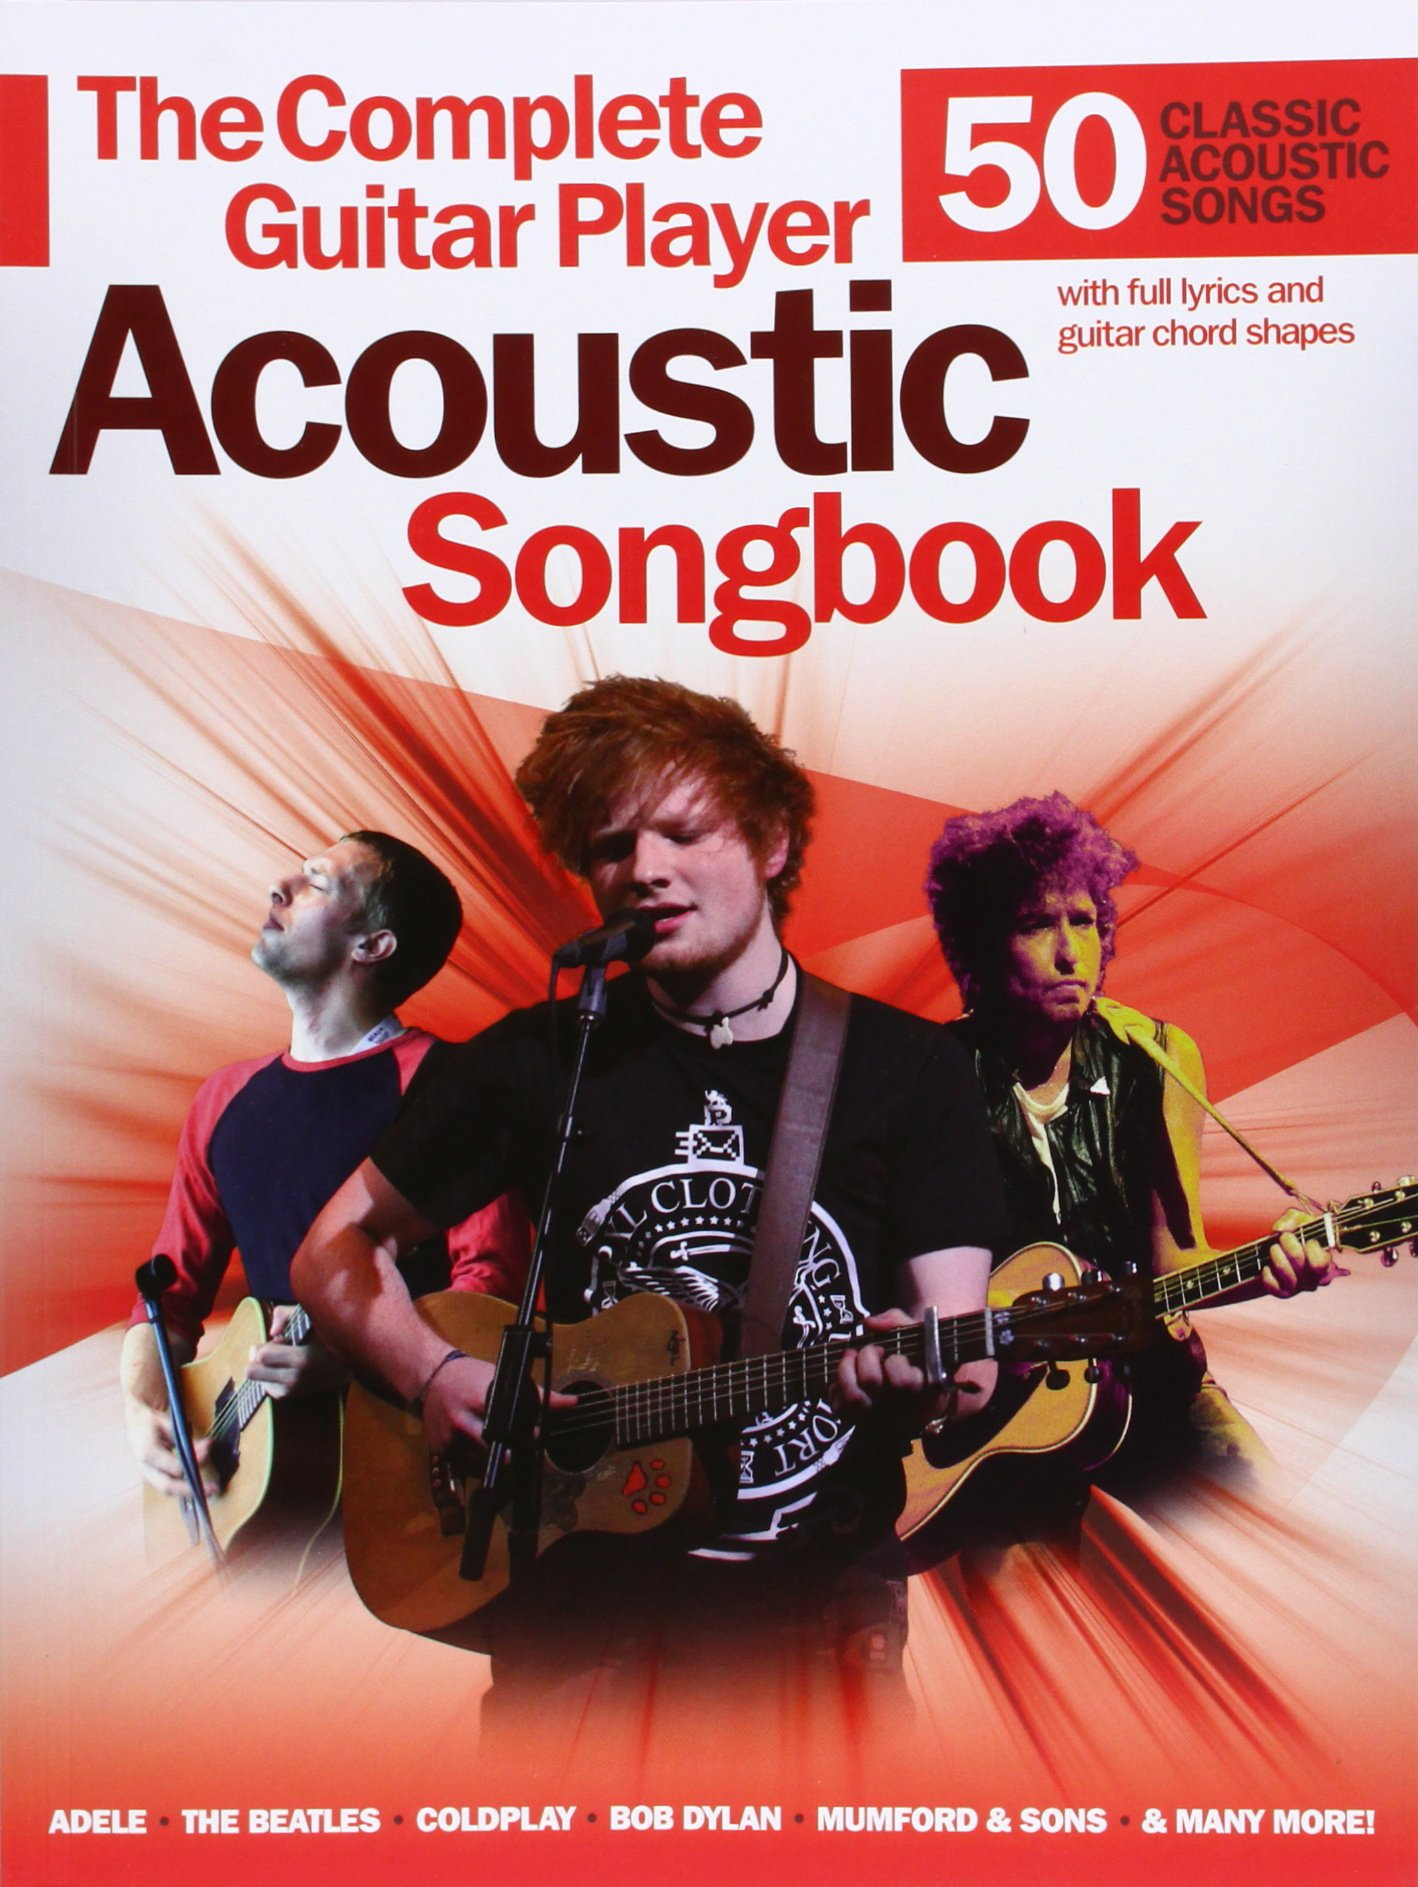 The Complete Guitar Player: Acoustic Songbook: Amazon.es: Wise ...